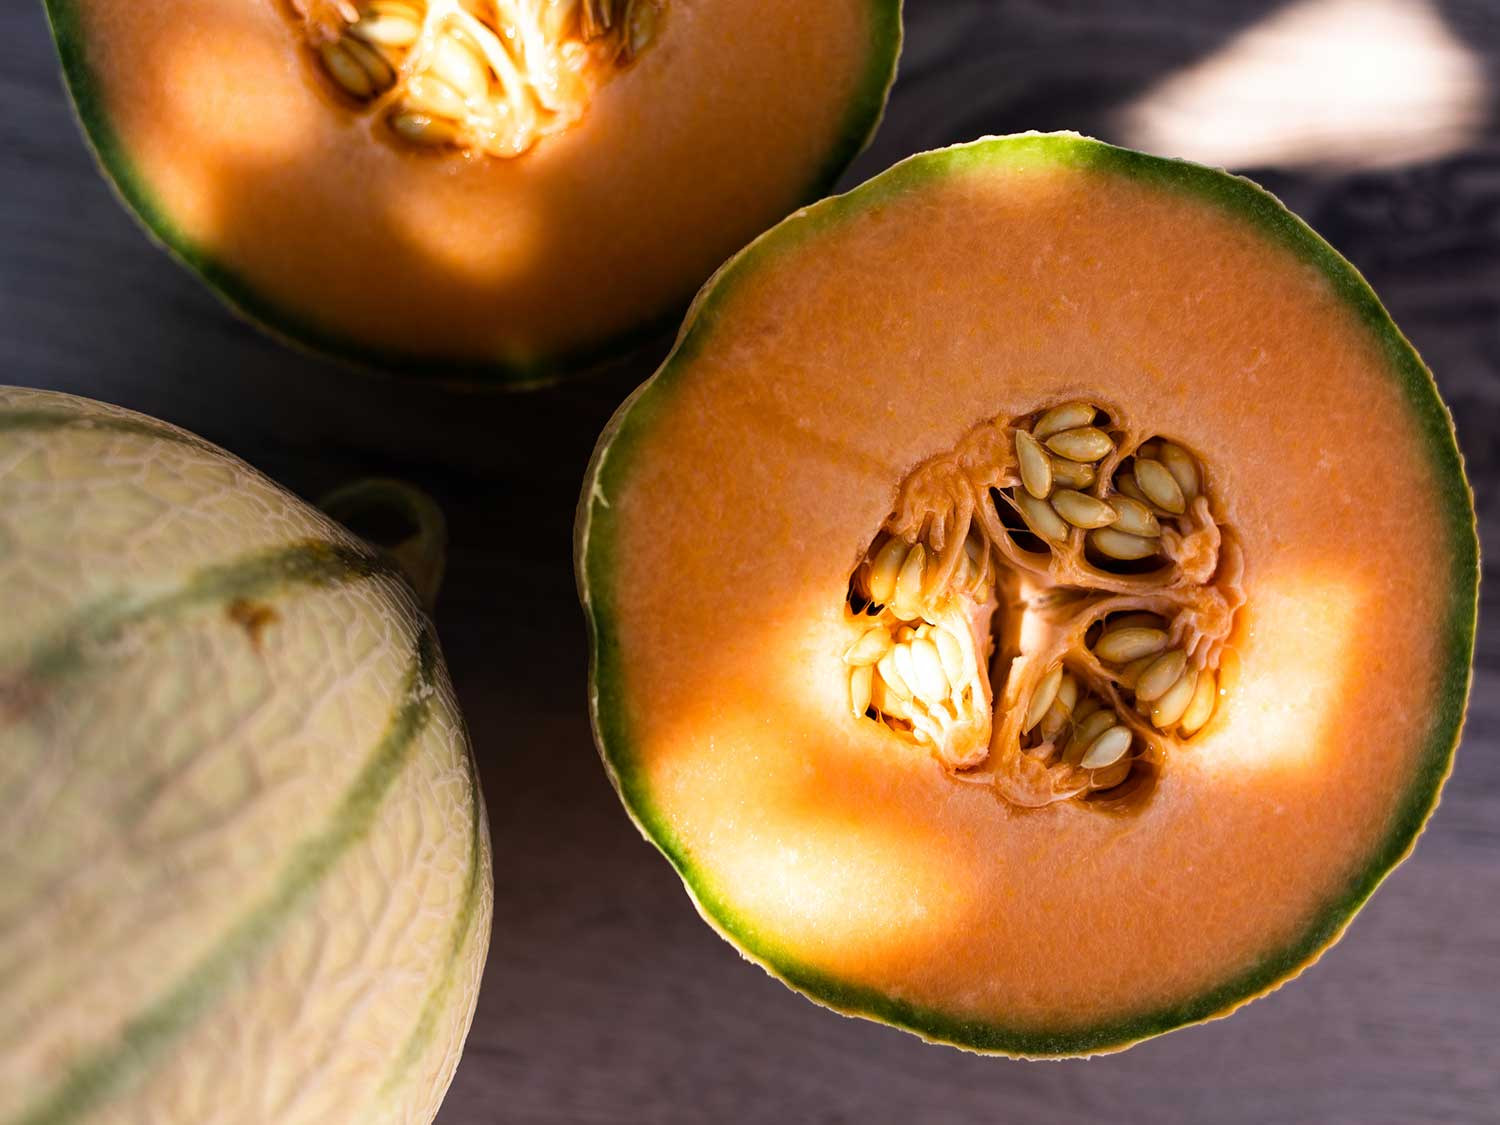 This French Melon Is Everything Cantaloupe Wishes It Could Be